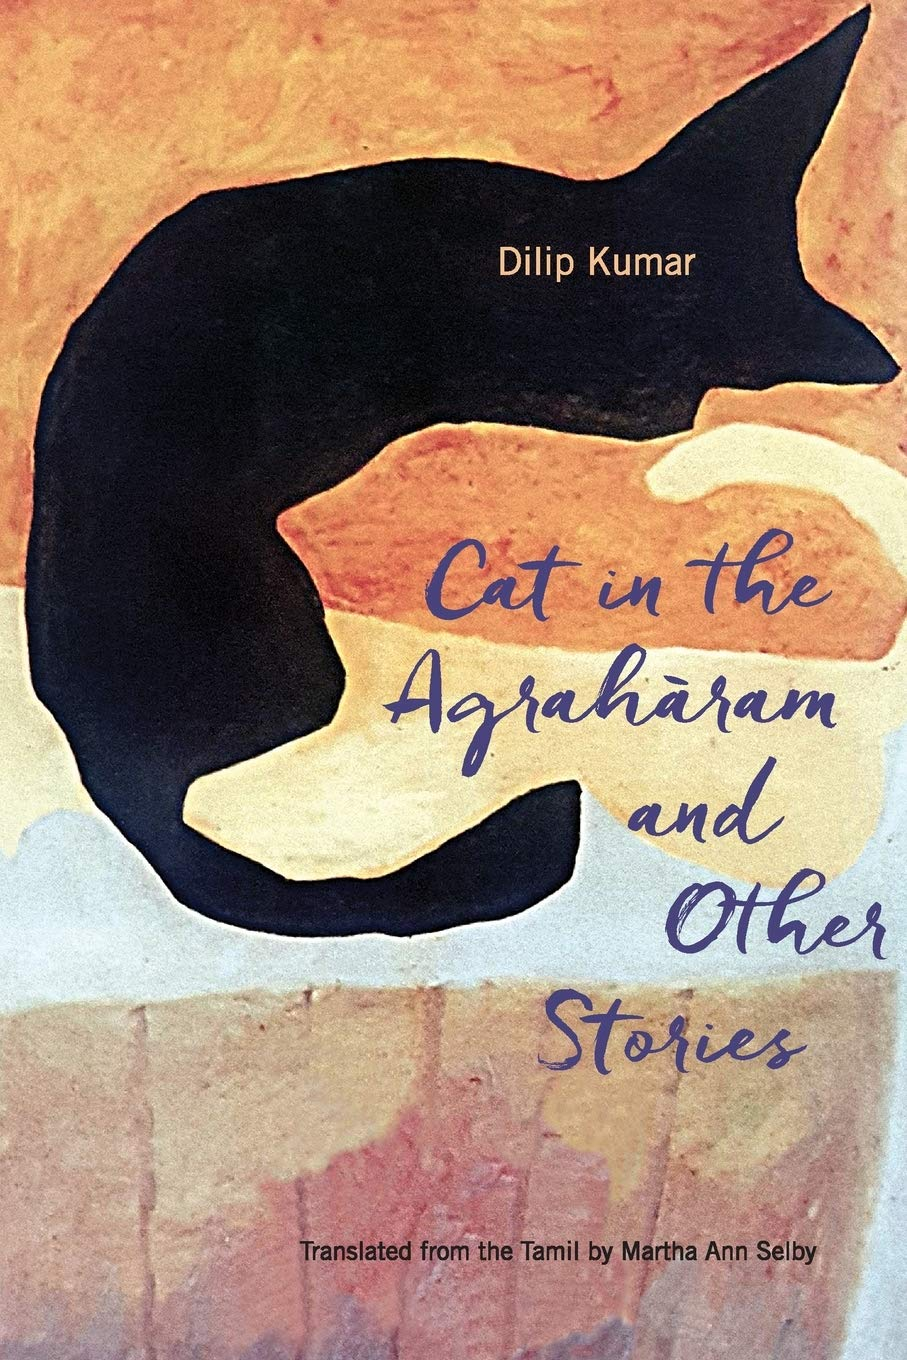 Cat in the Agraharam and Other Stories: Dilip Kumar: 9780810141551:  Amazon.com: Books